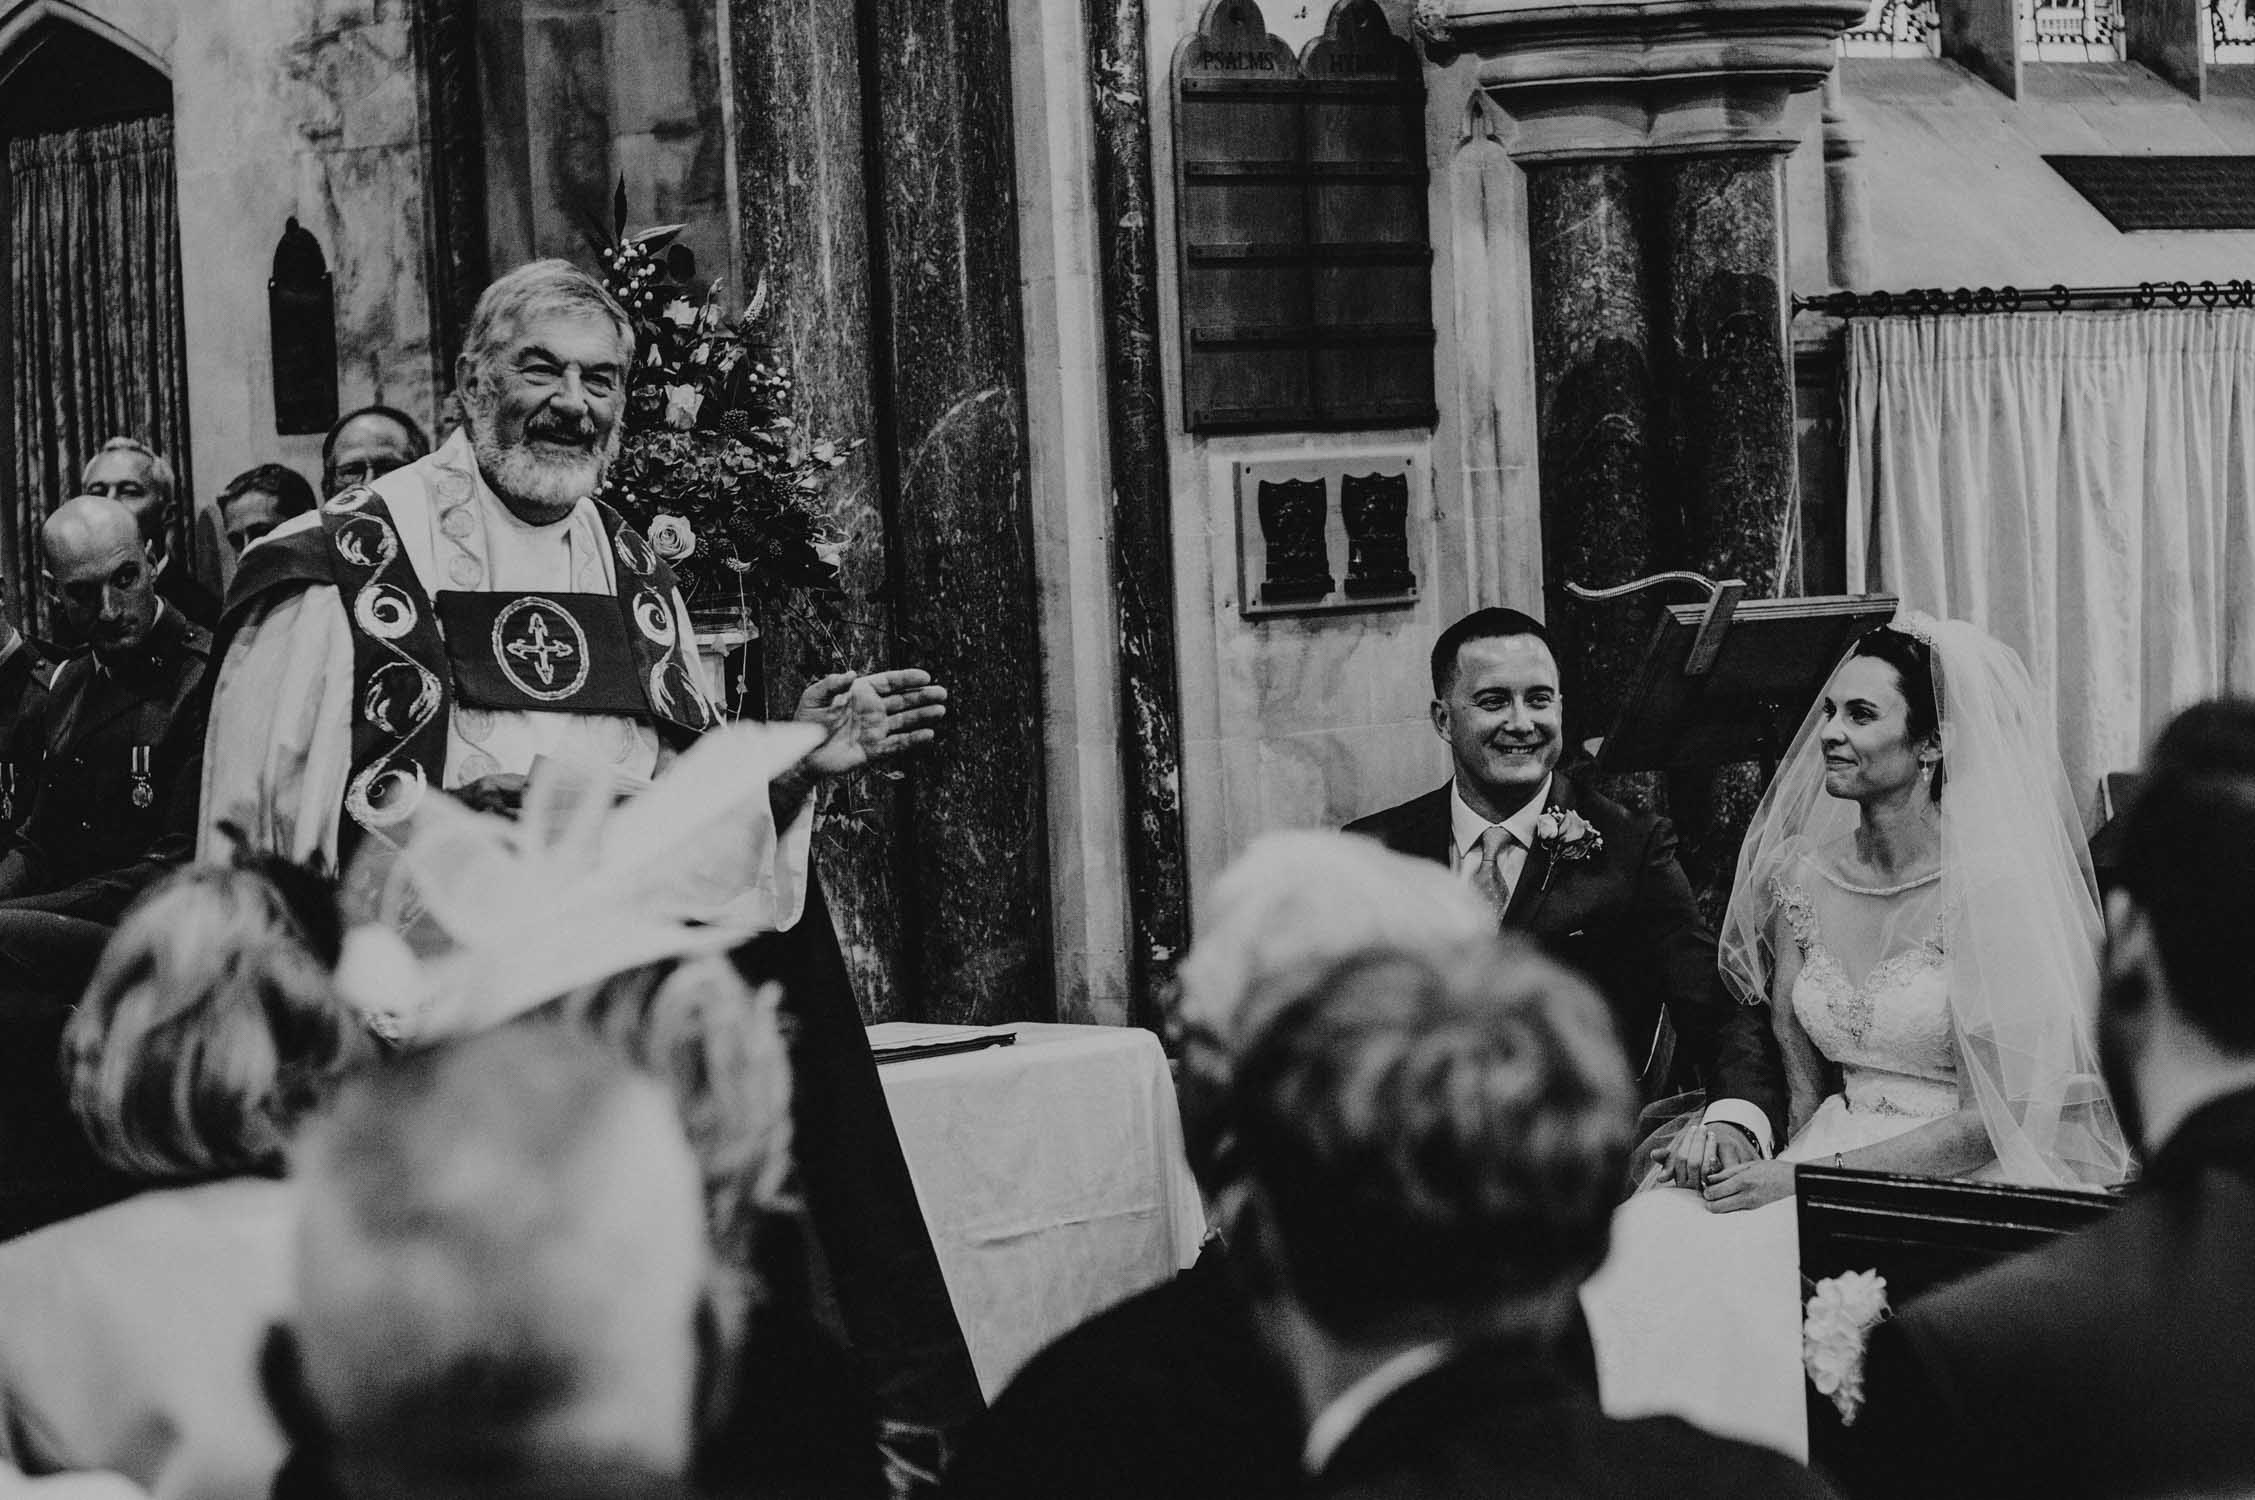 Vicar conducting a wedding with a seated bride and groom at st audries park in somerset, reportage wedding photographer in somerset.